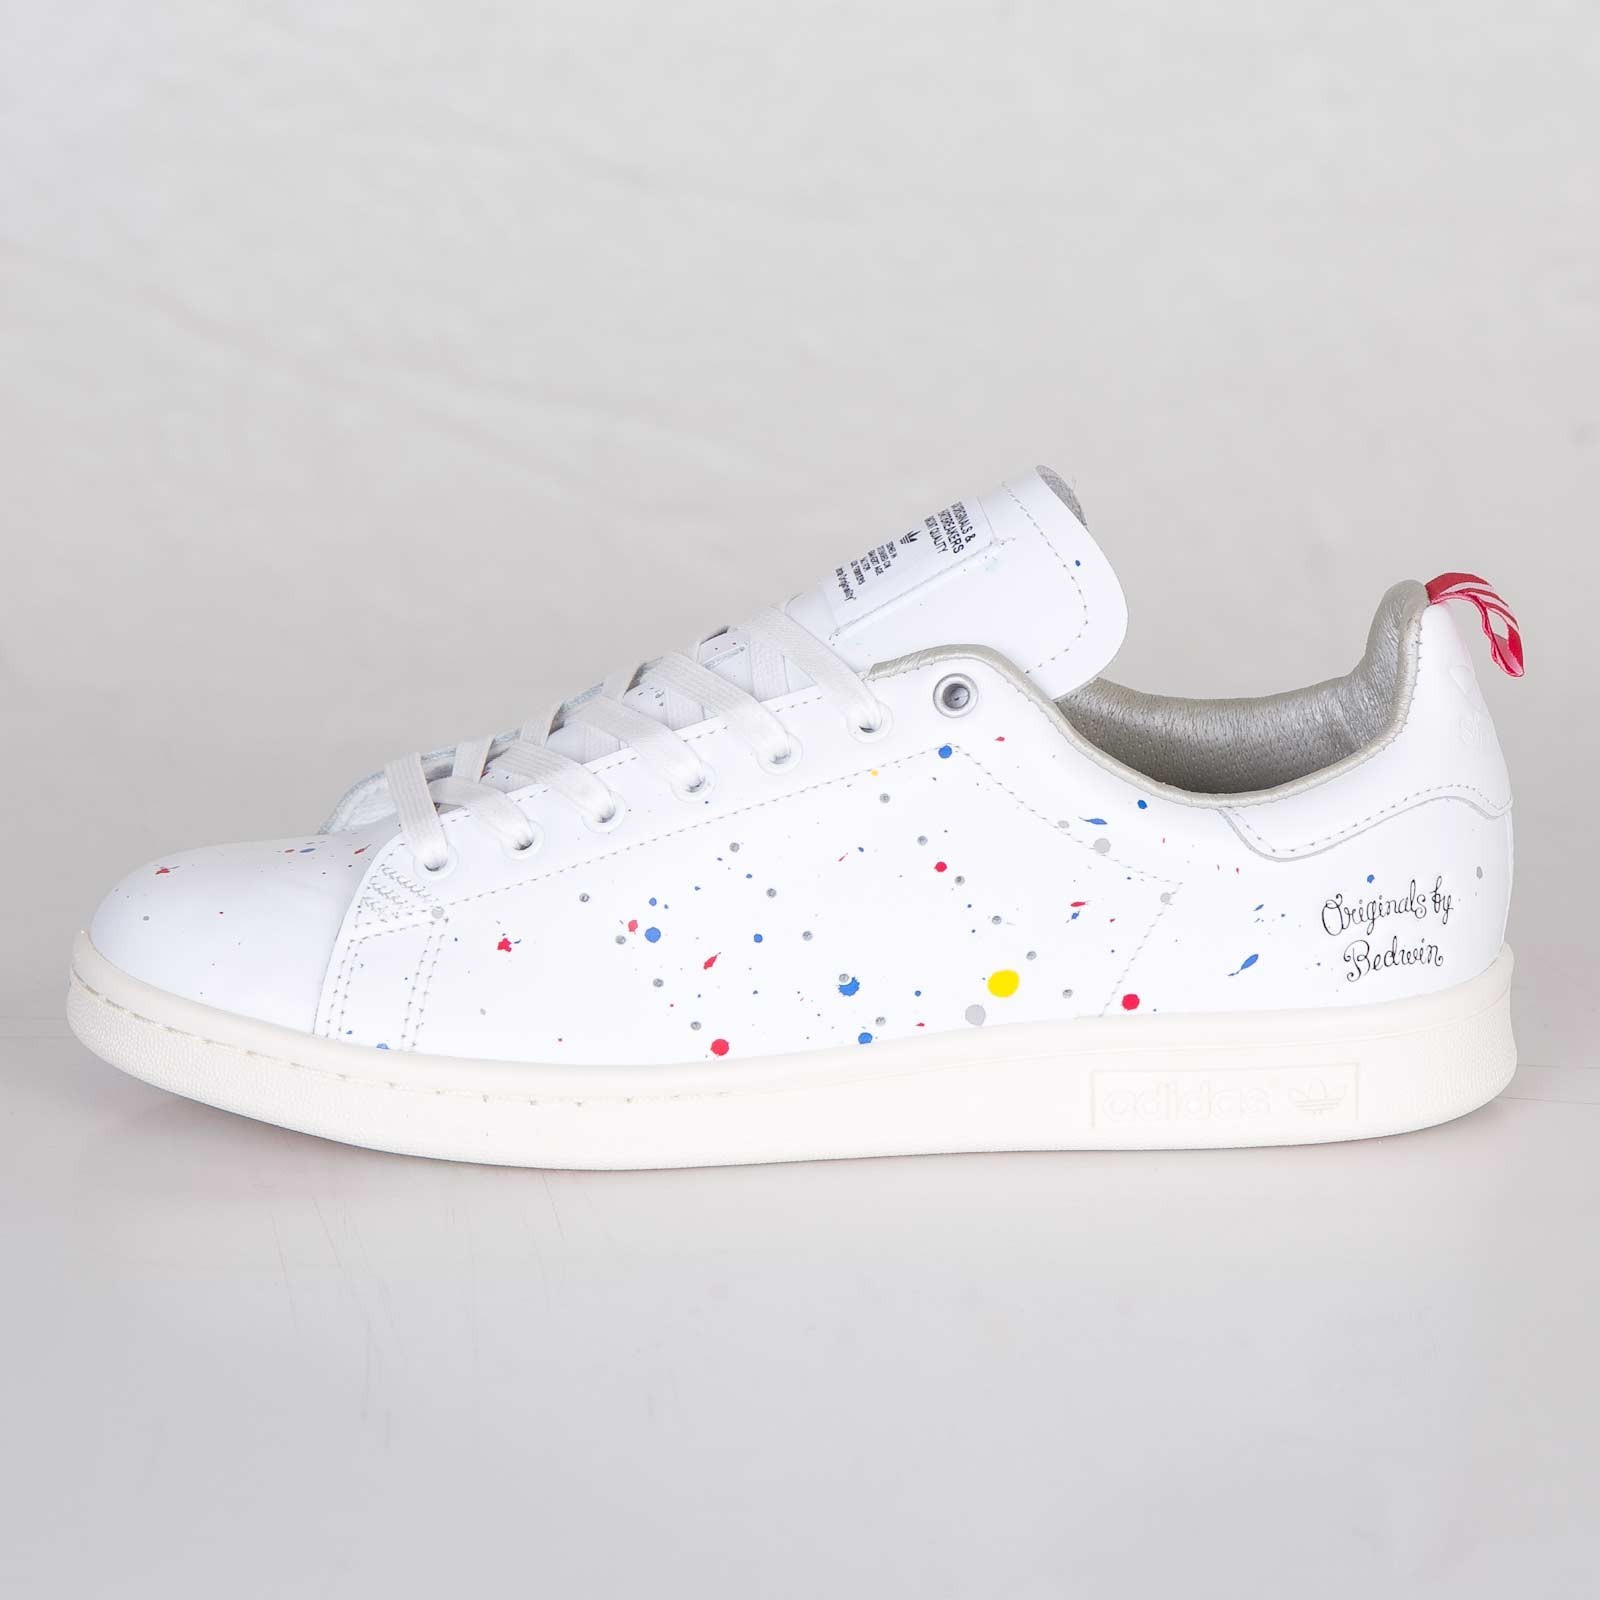 Soldes Chaussures adidas stan smith homme Pas Cher,Achat ...